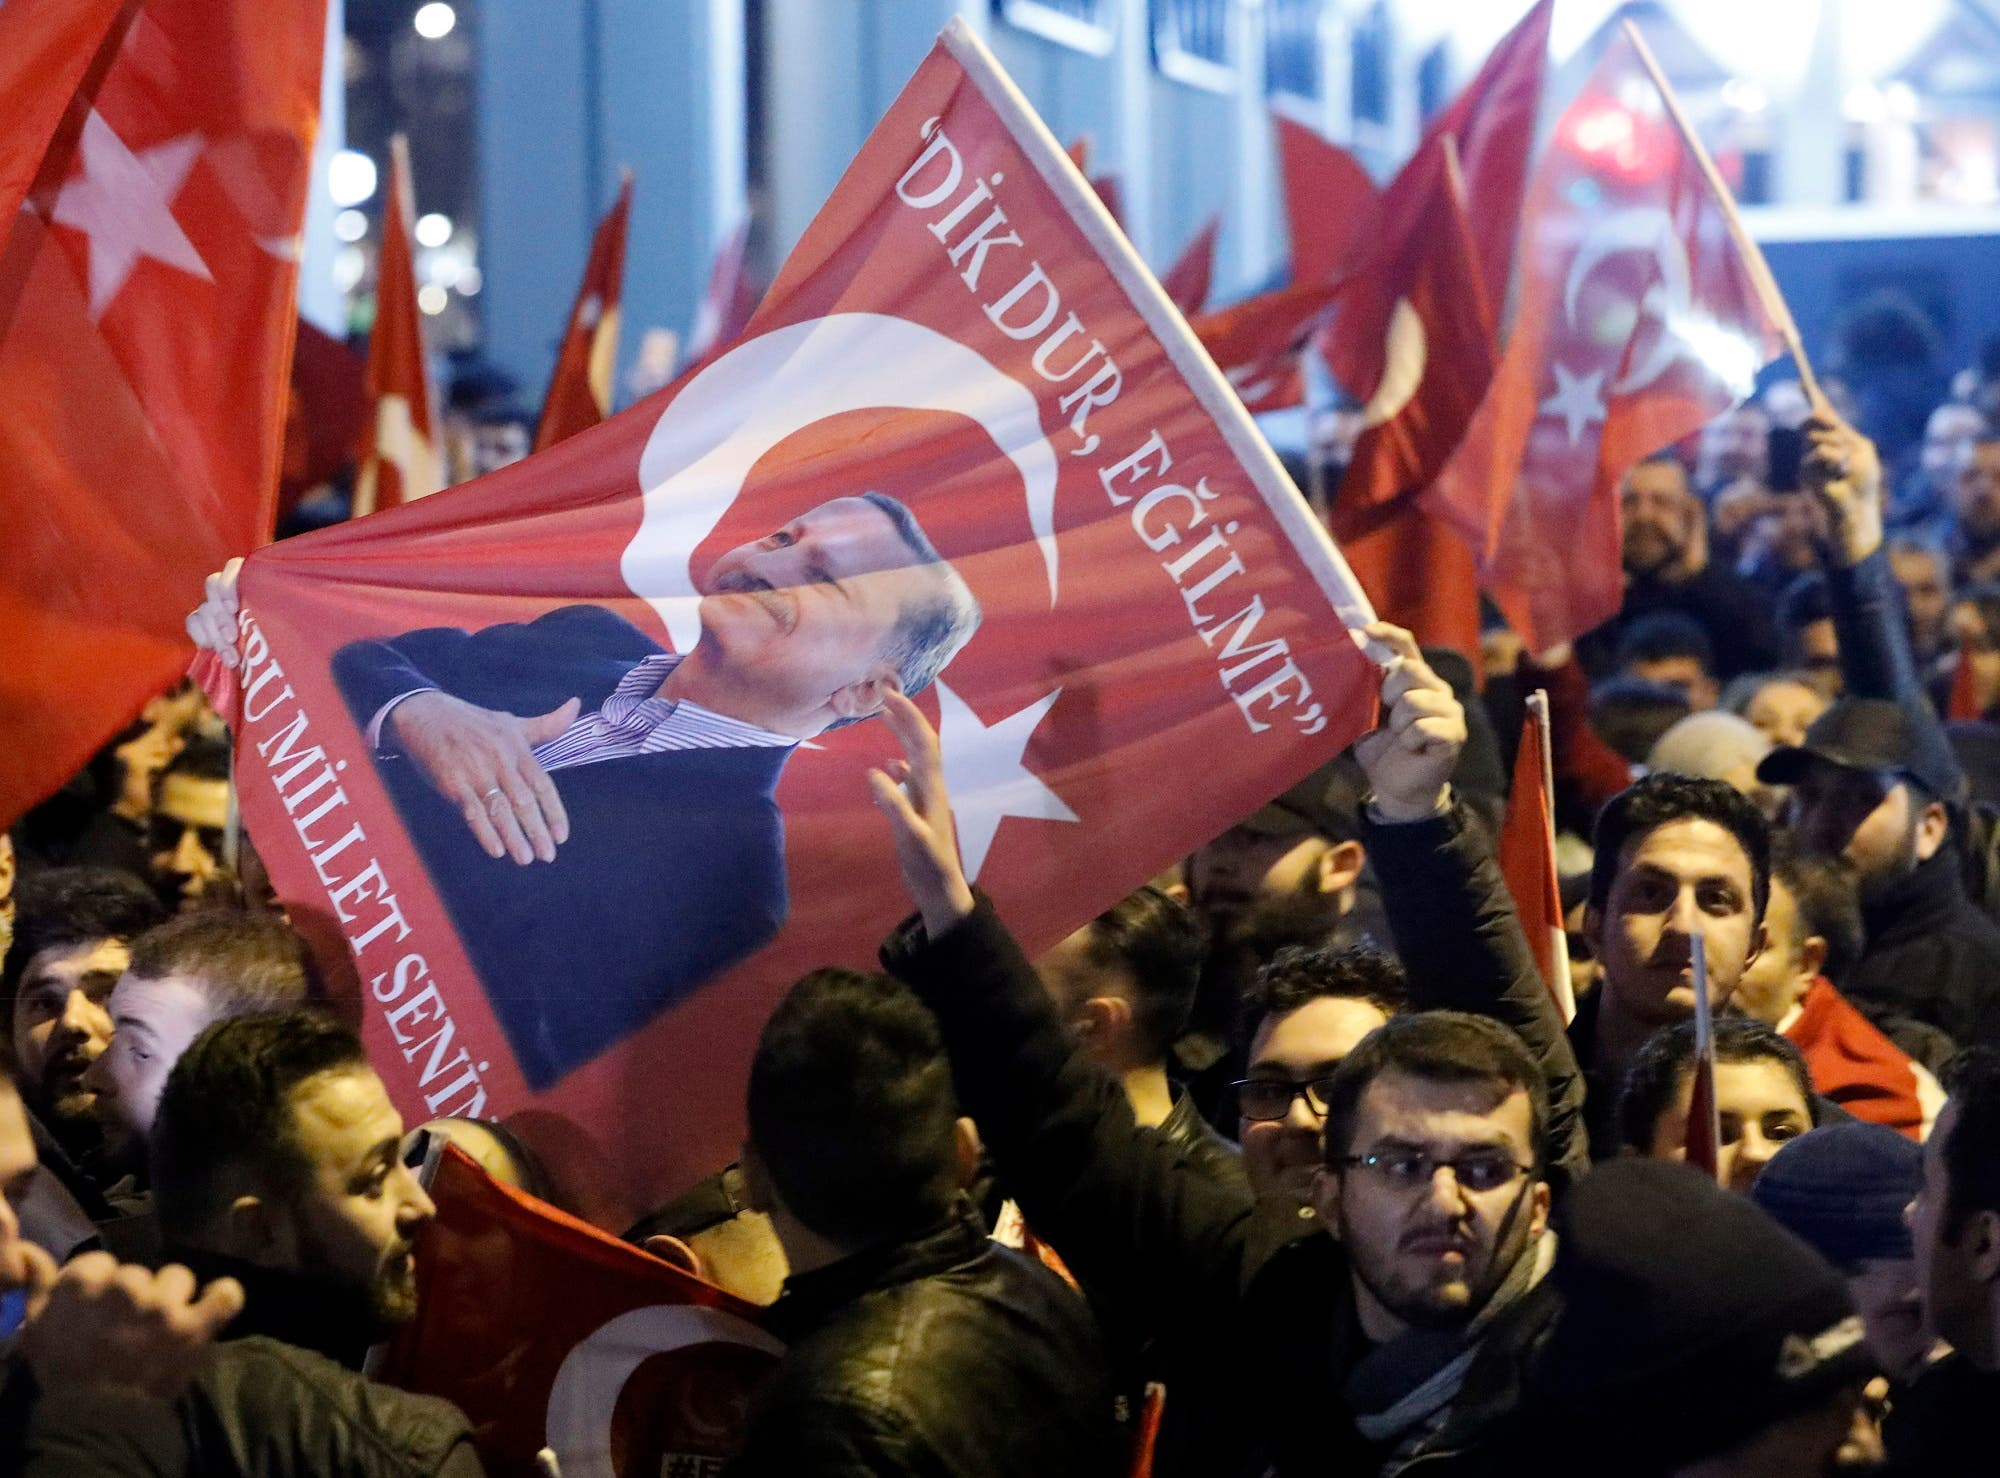 Demonstrators with banners of Turkish President Recep Tayyip Erdogan gather outsidethe Turkish consulate to welcome the Turkish Family Minister Fatma Betul Sayan Kaya. (Reuters)